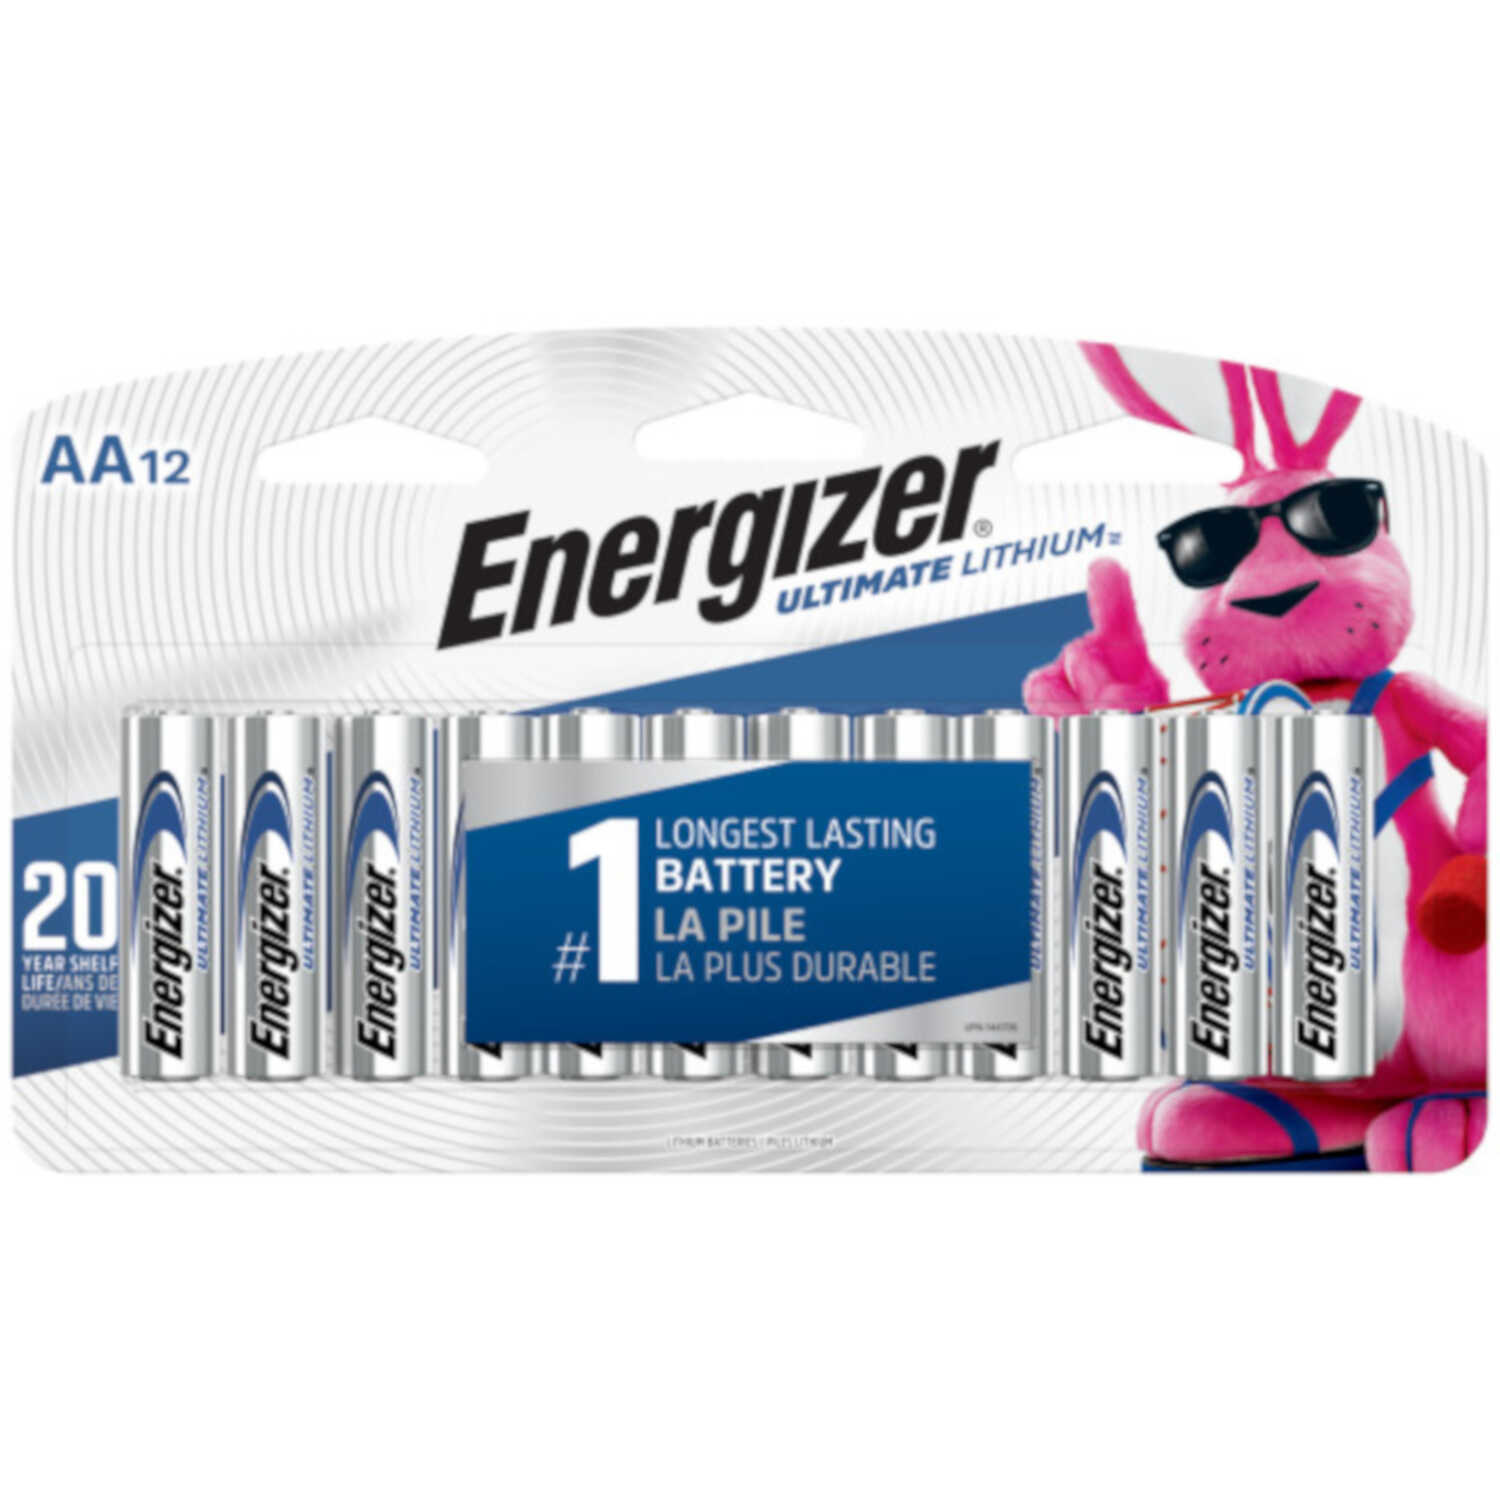 Energizer  Ultimate  Lithium Ion  AA  1.5 volt Batteries  12 pk